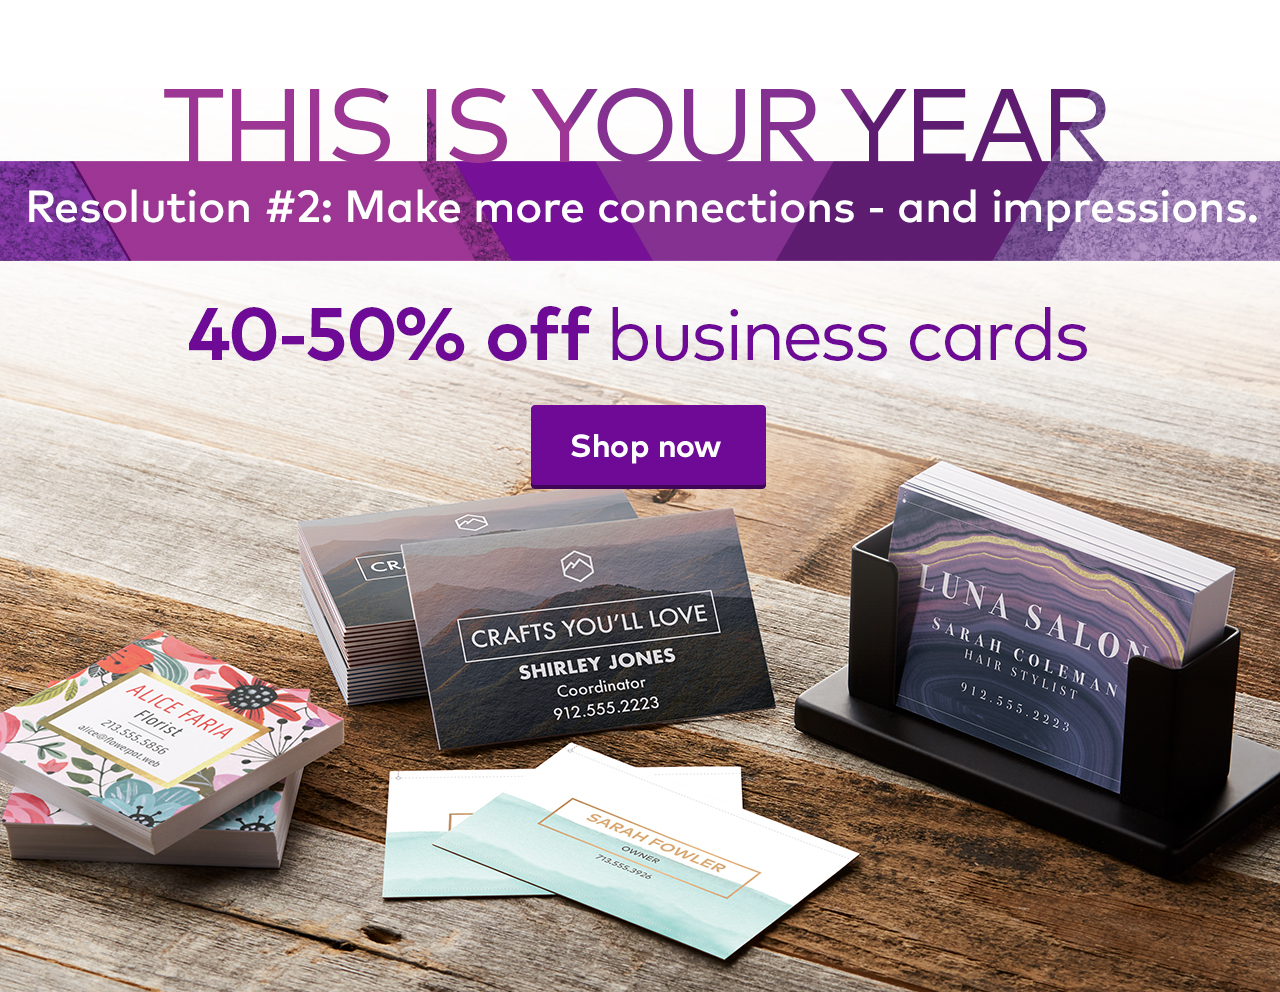 50 Off Business Cards Vistaprint Deals - oukas.info